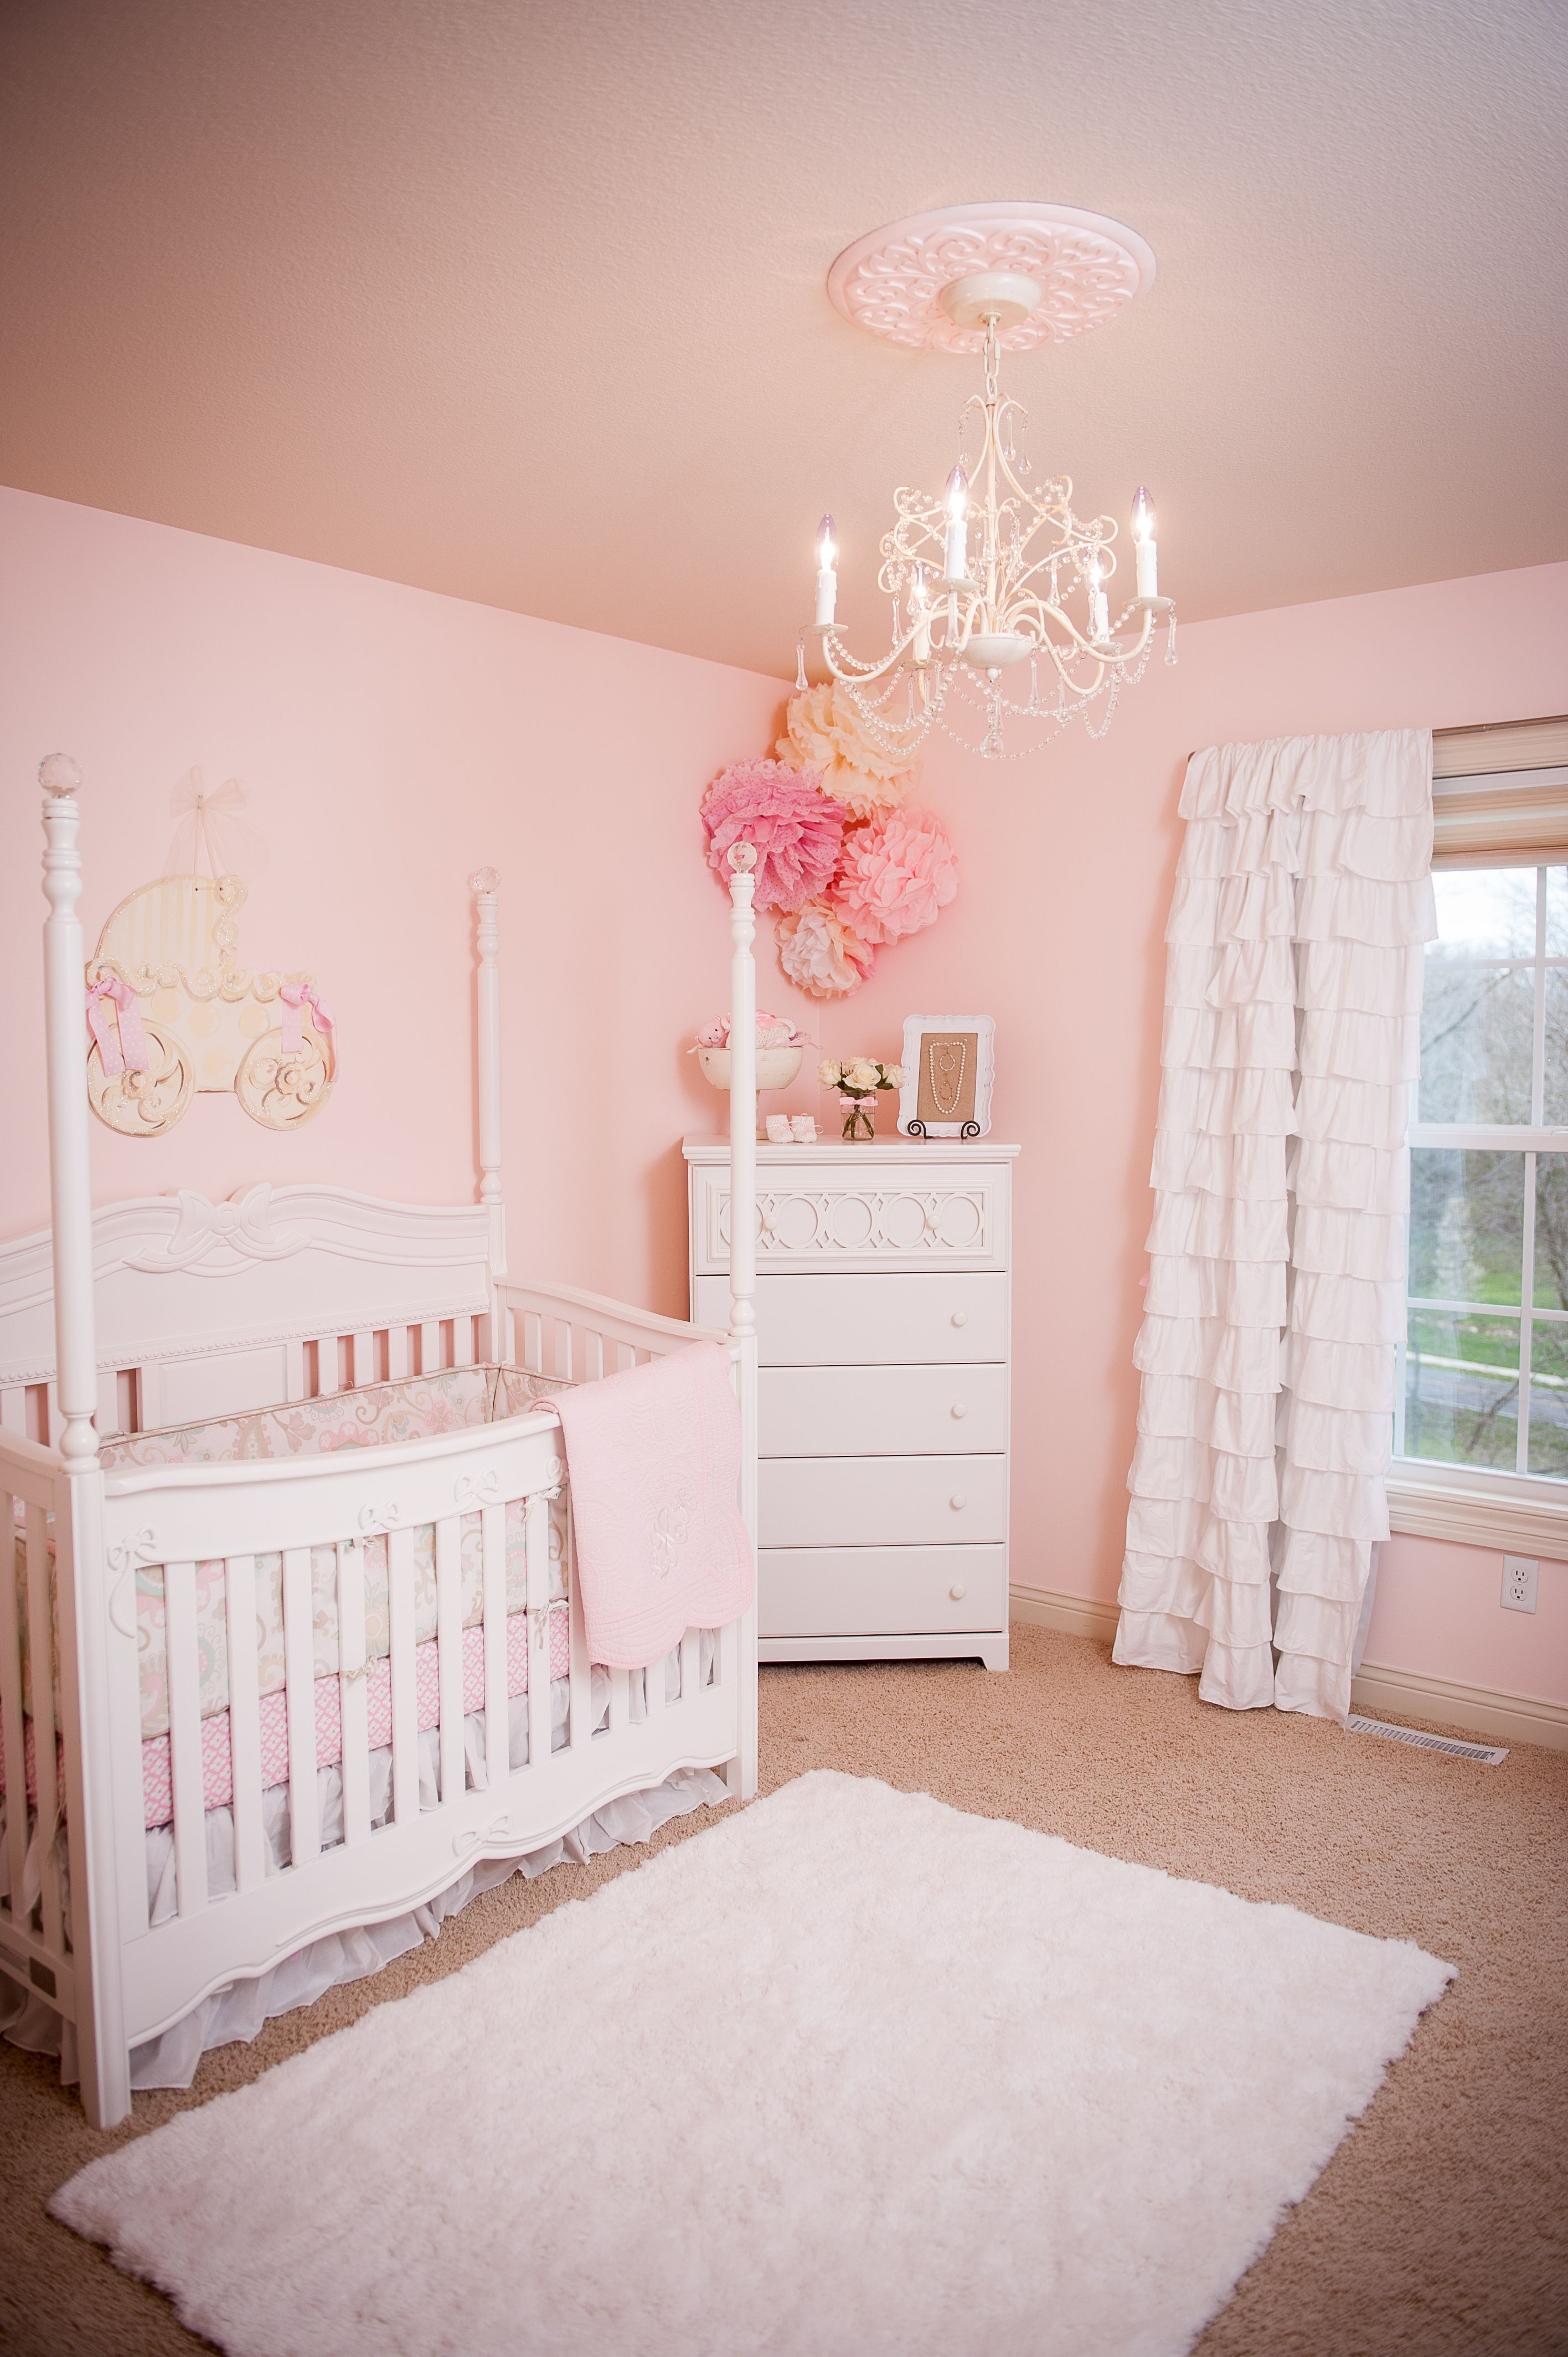 Lolas nursery soft pink princess canopy crib baby girl pink chandeliers for baby rooms within vintage girl nursery silver metal canopy crib soft photo 963 lighting design and chandeliers arubaitofo Images